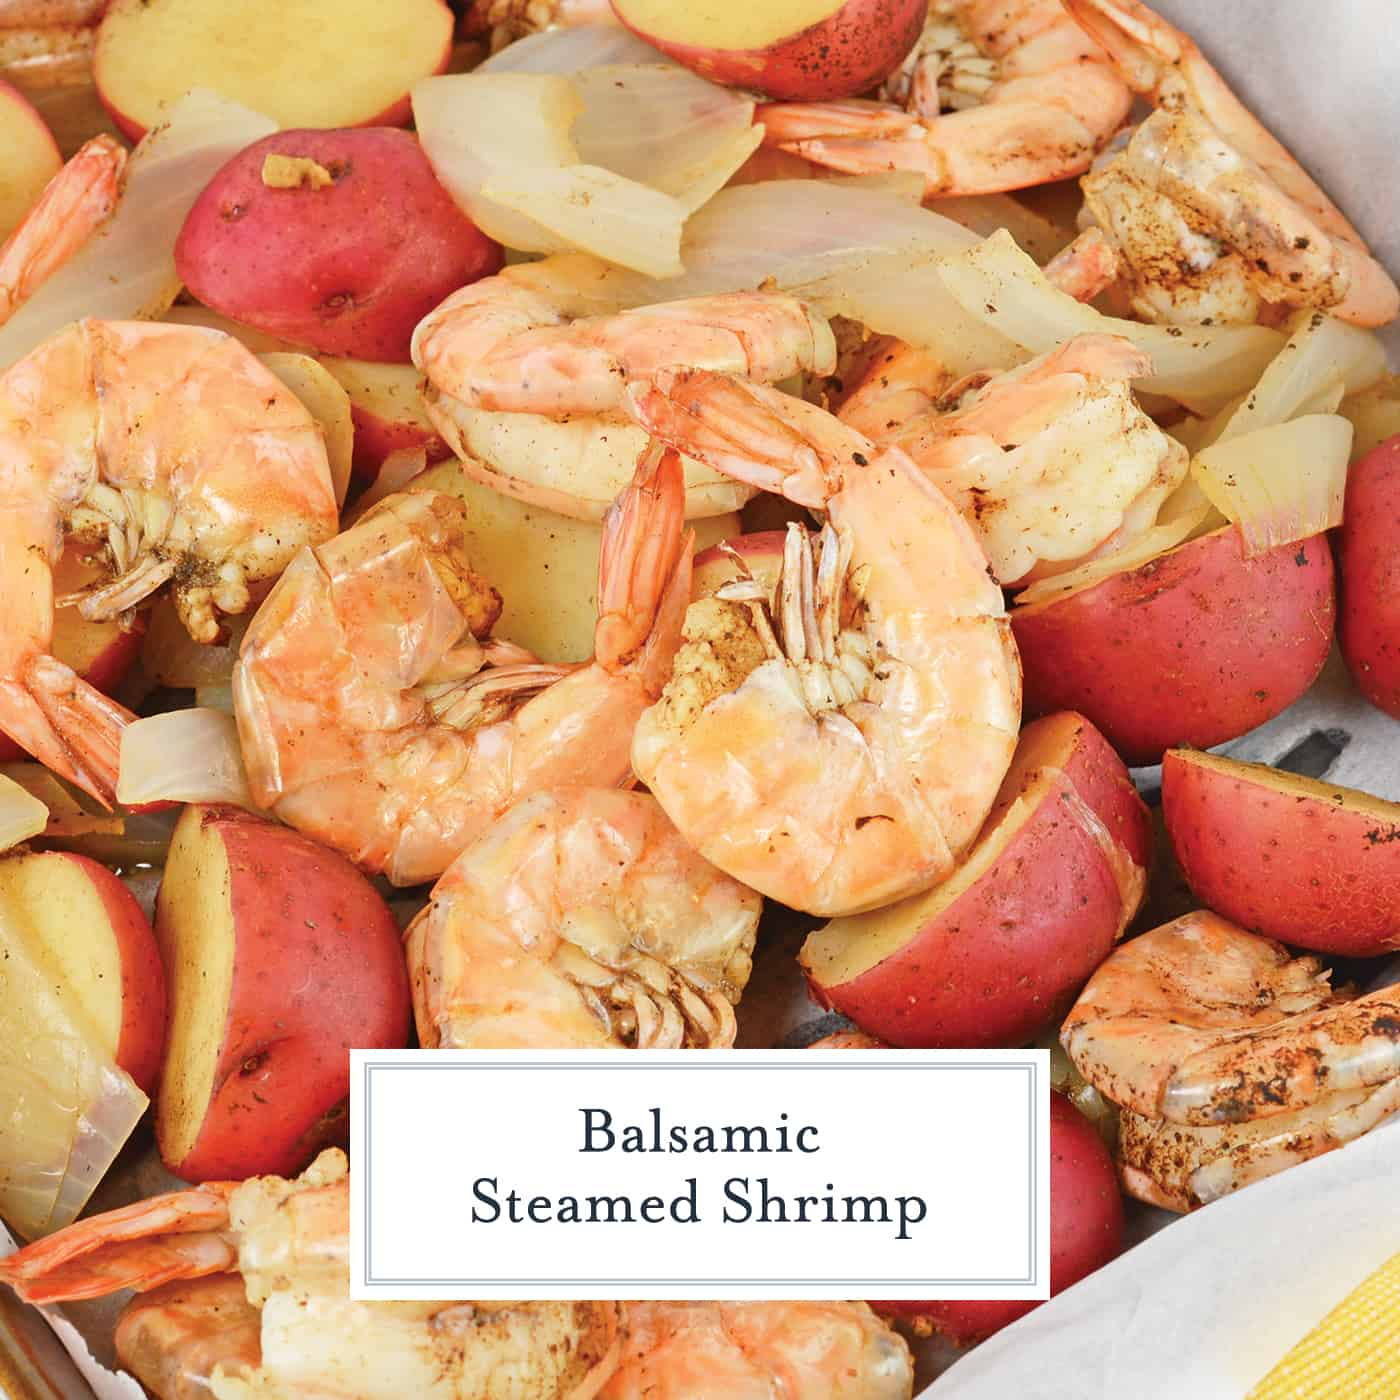 Balsamic Steamed Shrimp is a new twist on an old favorite! If you don't know how to steam shrimp then this recipe will show you how! #steamedshrimp #howtosteamshrimp www.savoryexperiments.com